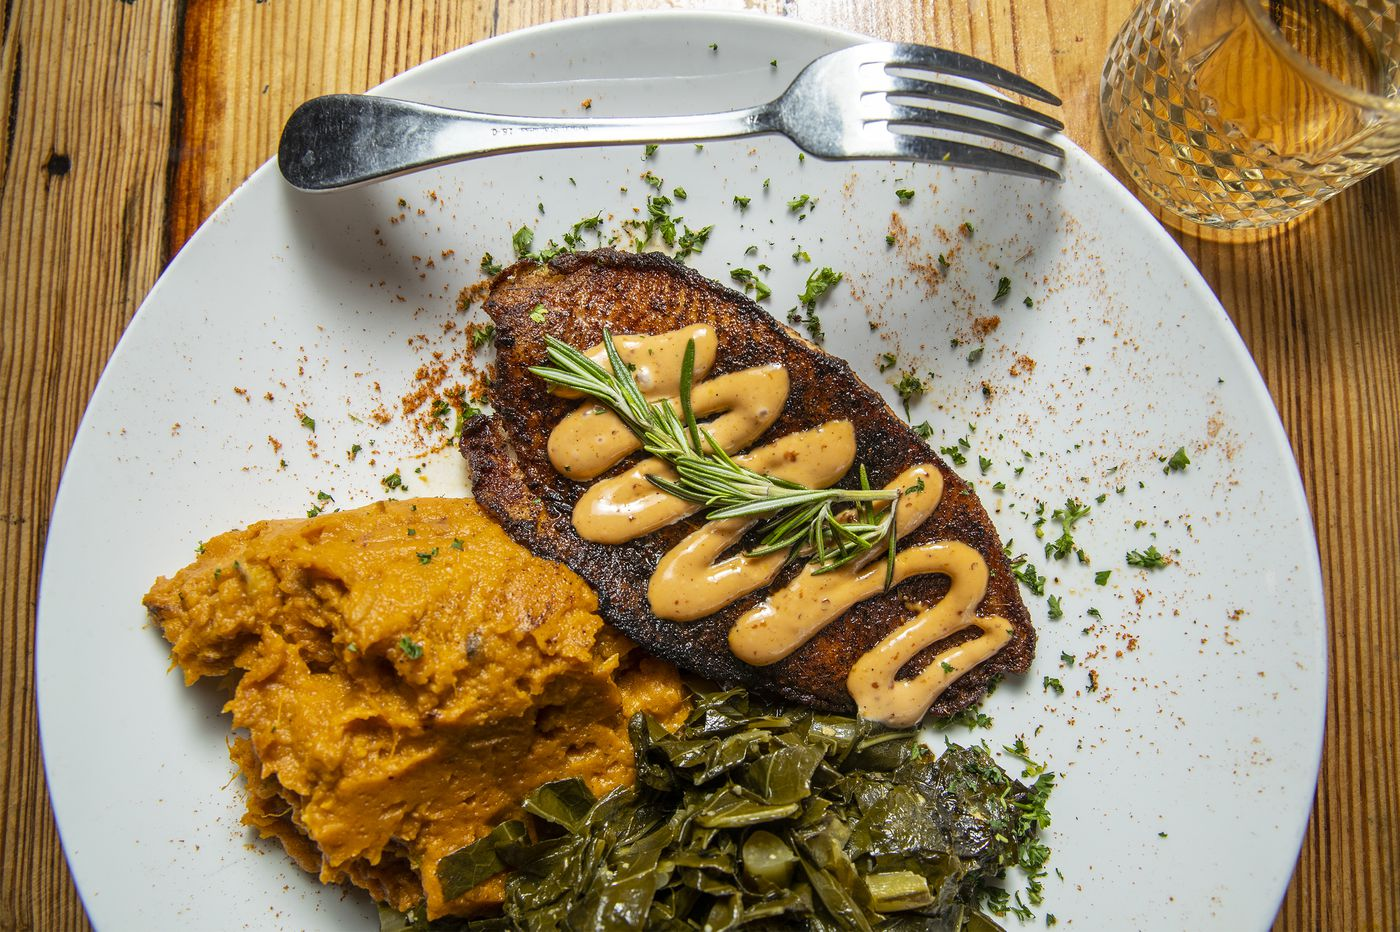 Booker's review: Southern flavors make this West Philly spot a neighborhood draw